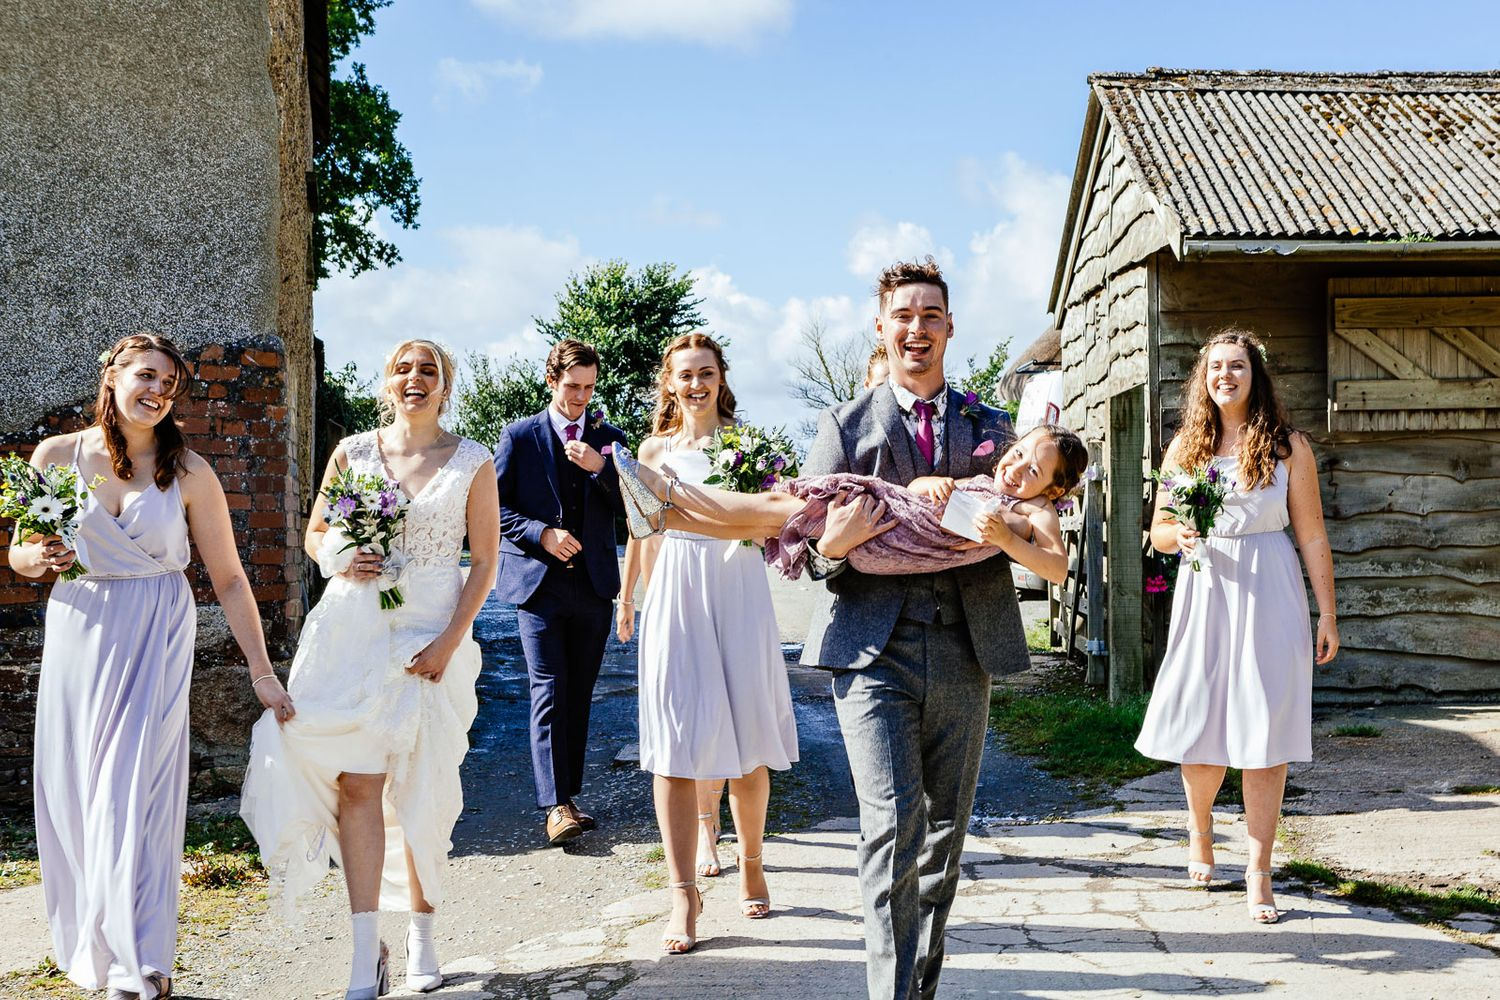 creative wedding photograph of bridal party by Tuscany based wedding photographer